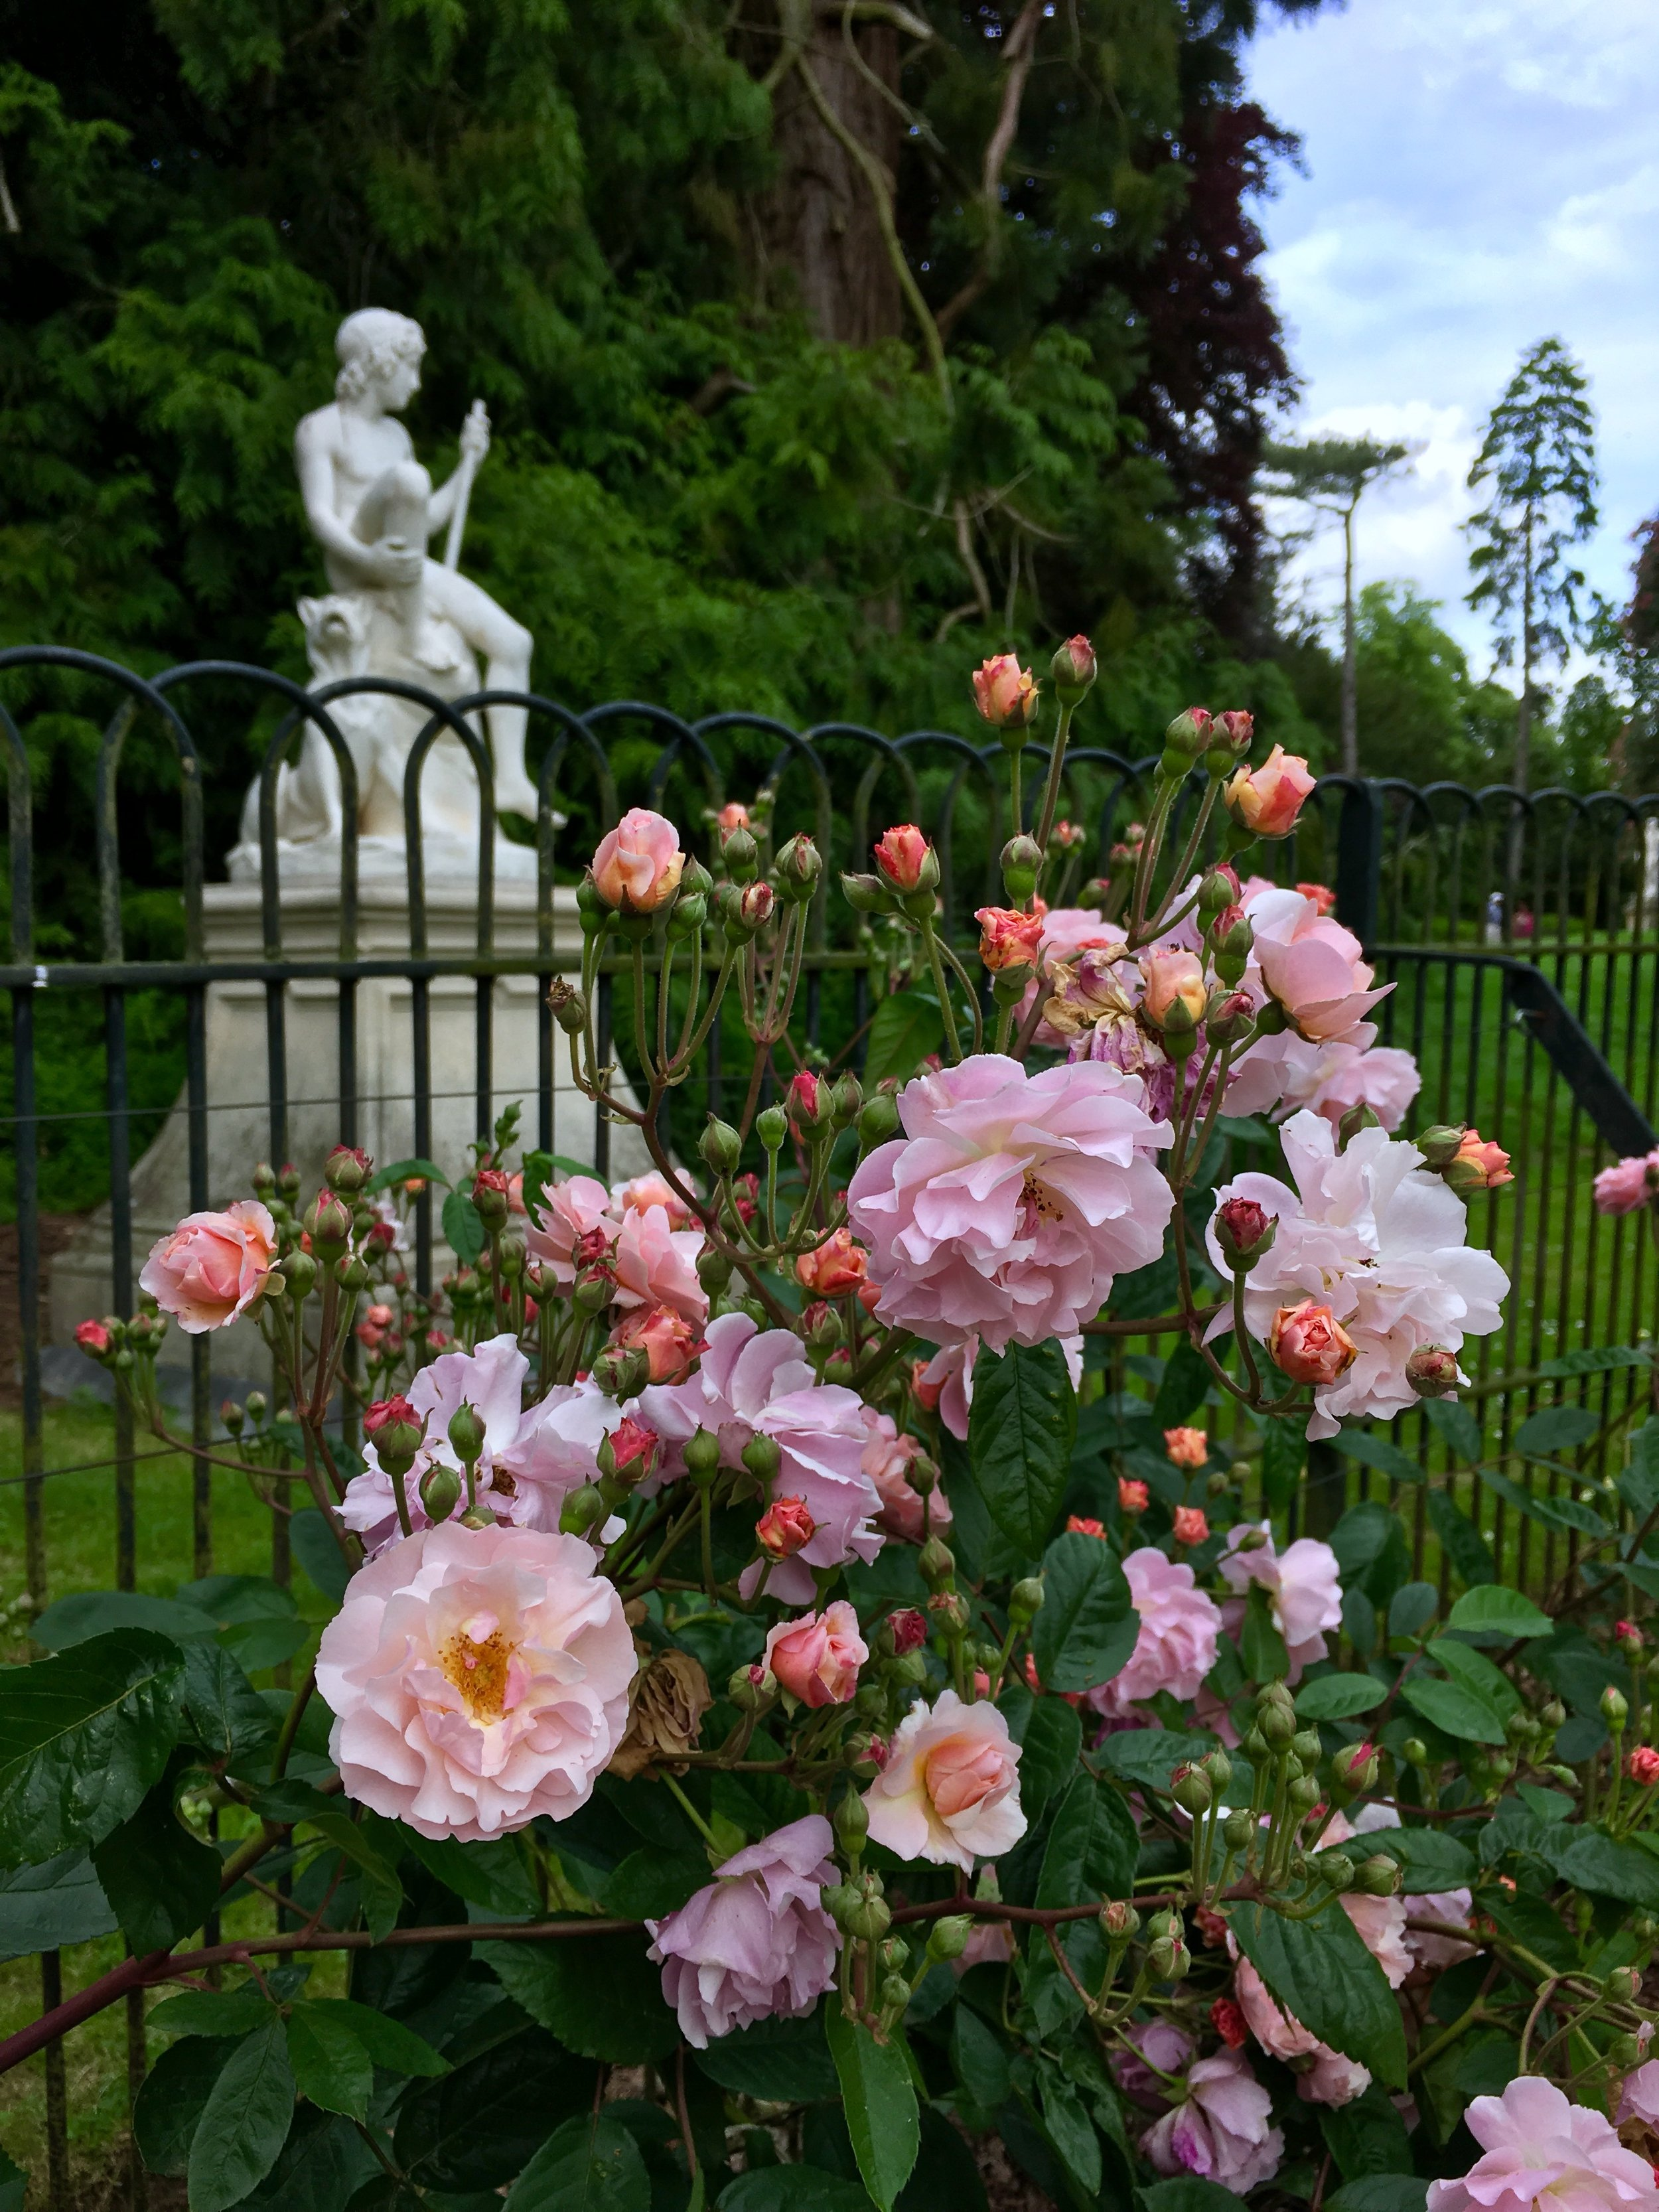 UK Waddesdon Manor rose garden 2 National Trust French Chateau Rothschild Buckinghamshire garden chateau Eileen Hsieh Follow That Bug .jpg